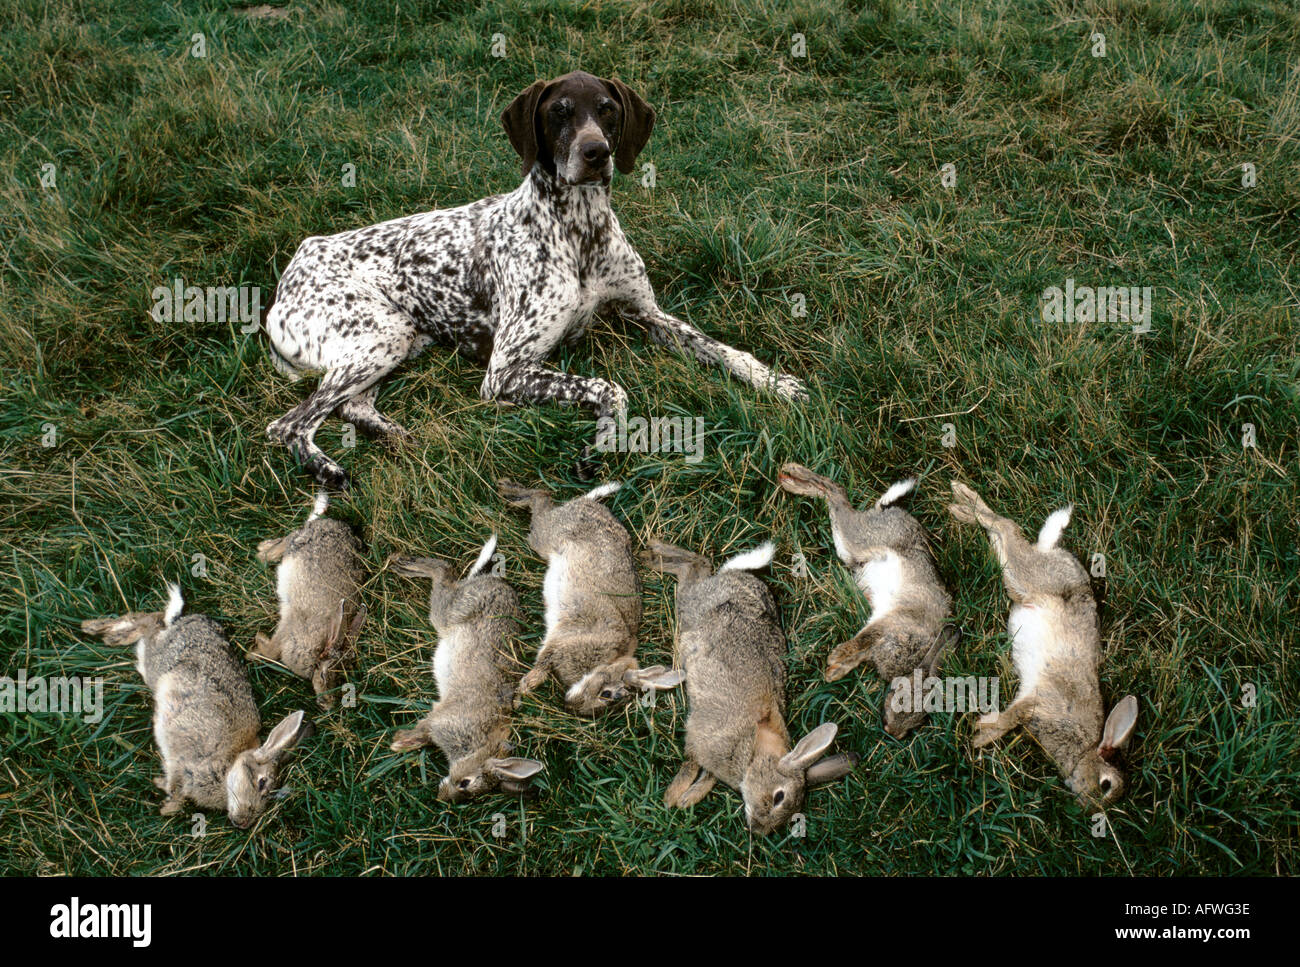 Working dog with rabbits Scotland HOMER SYKES - Stock Image